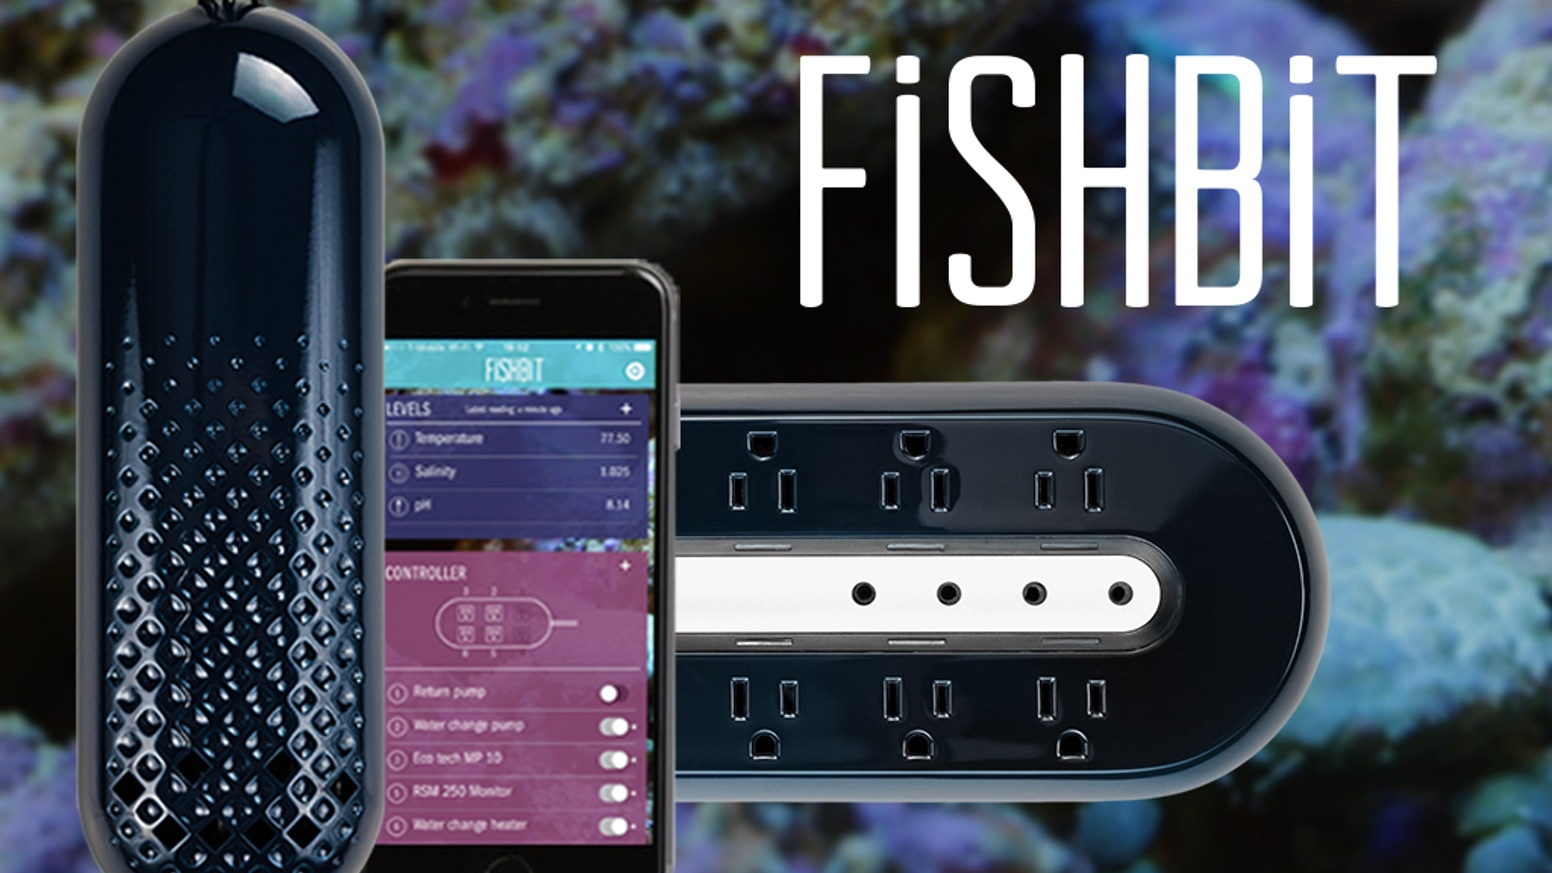 The world's simplest aquarium monitor and controller. Fishbit helps keep your tank thriving and fish and corals happy!